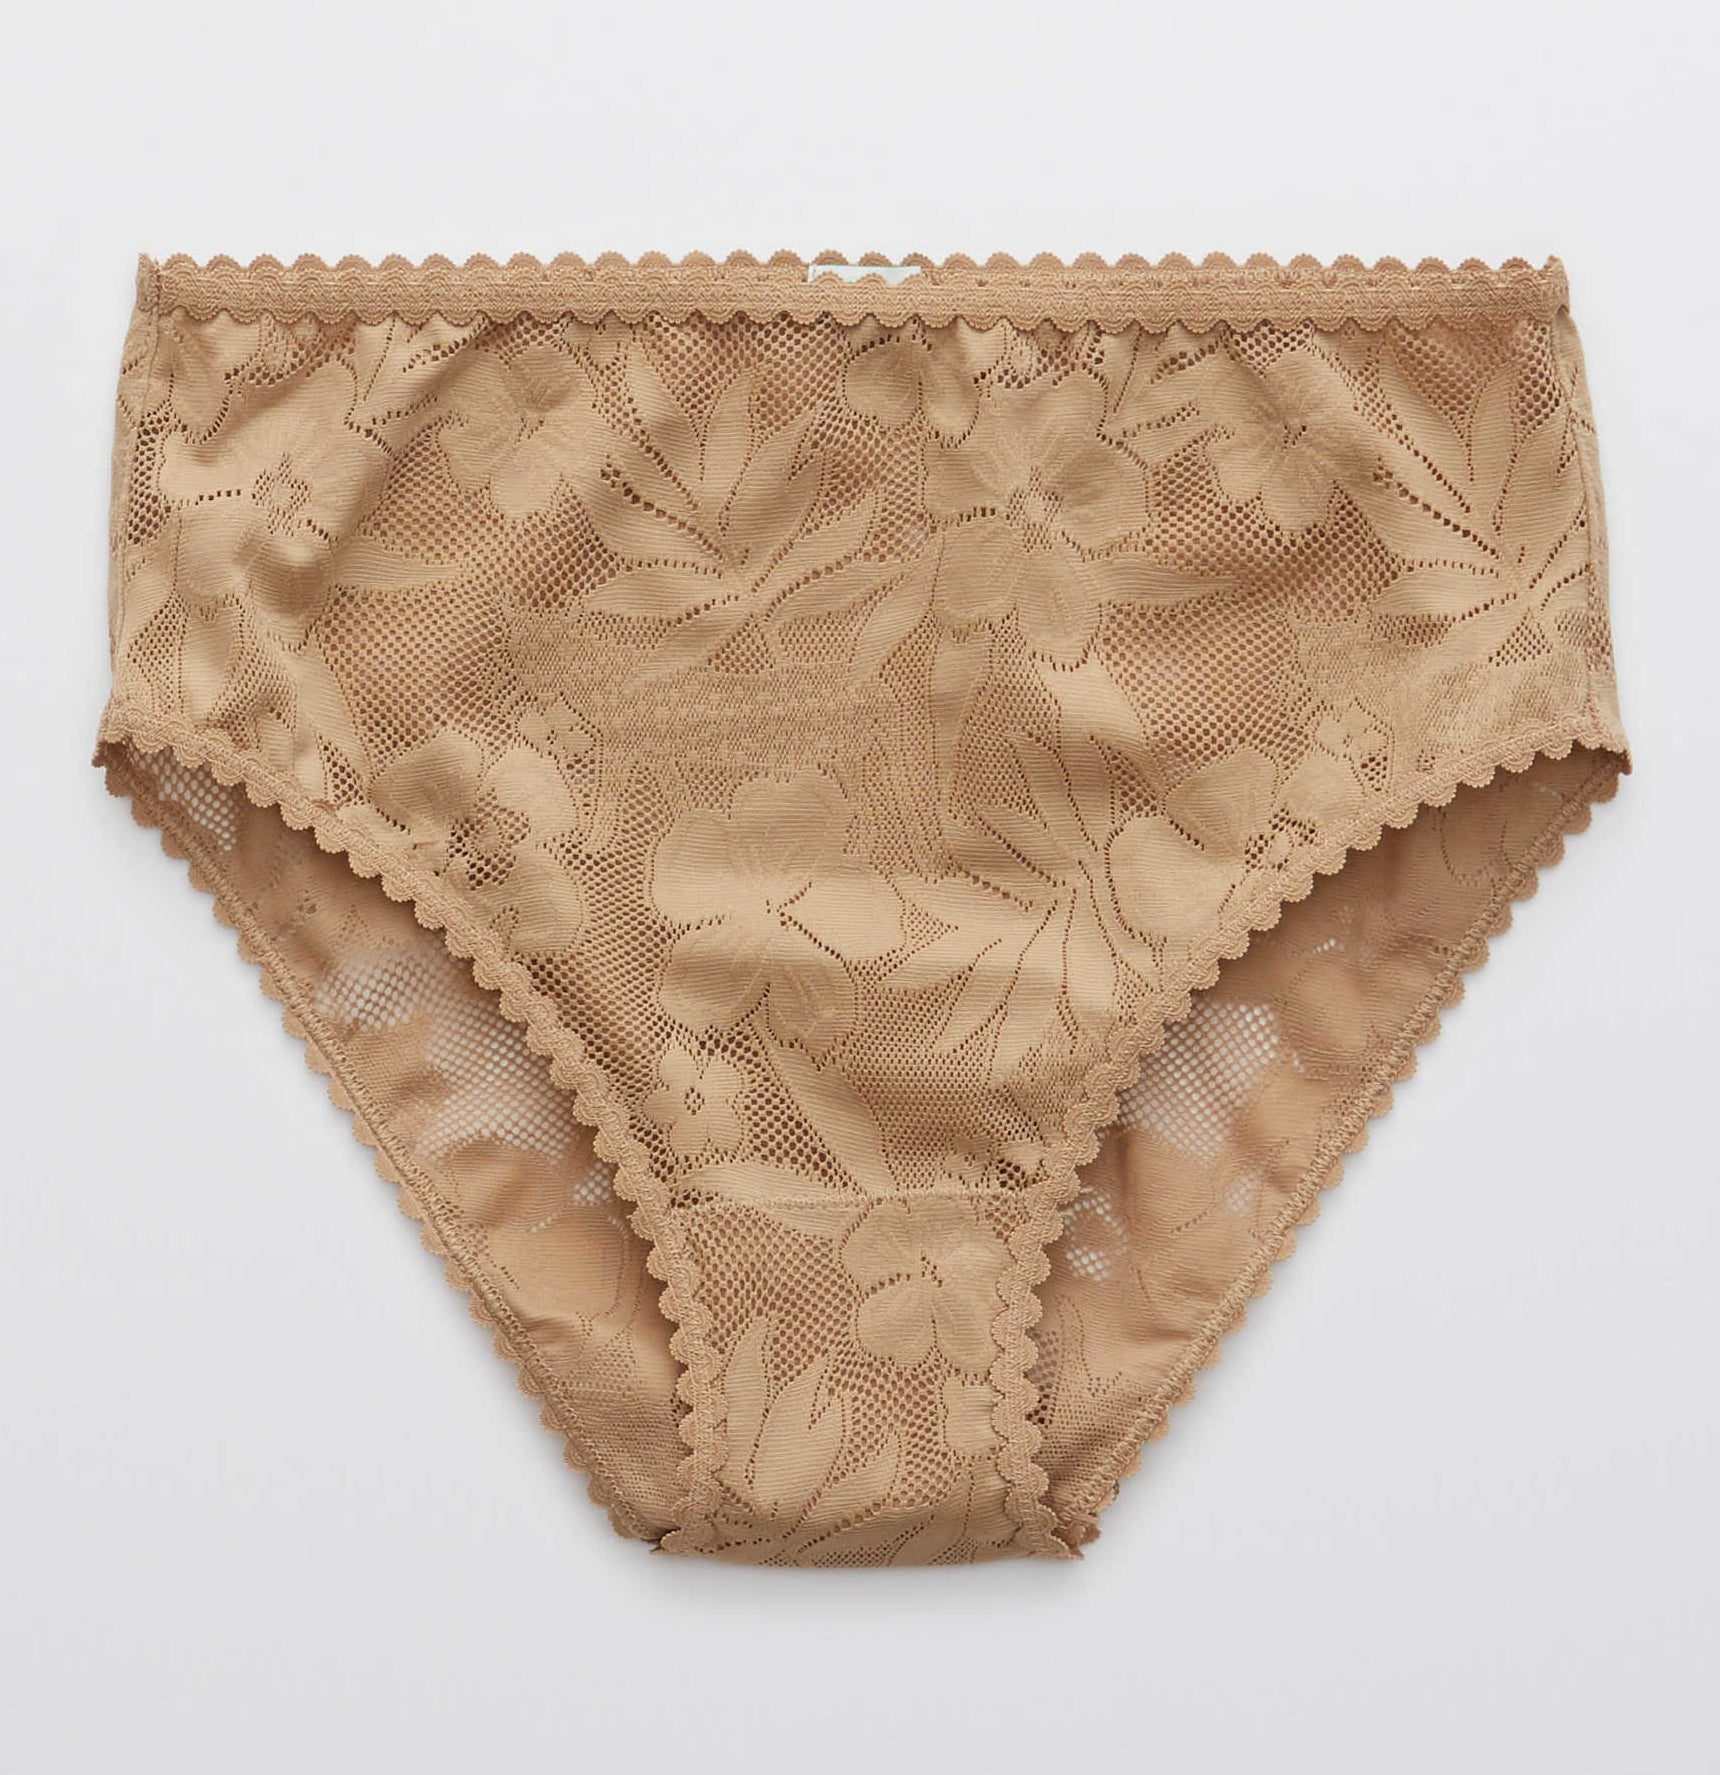 super high waisted dark beige panties with made of floral and cheetah lace with scalloped edging at the waist and leg openings